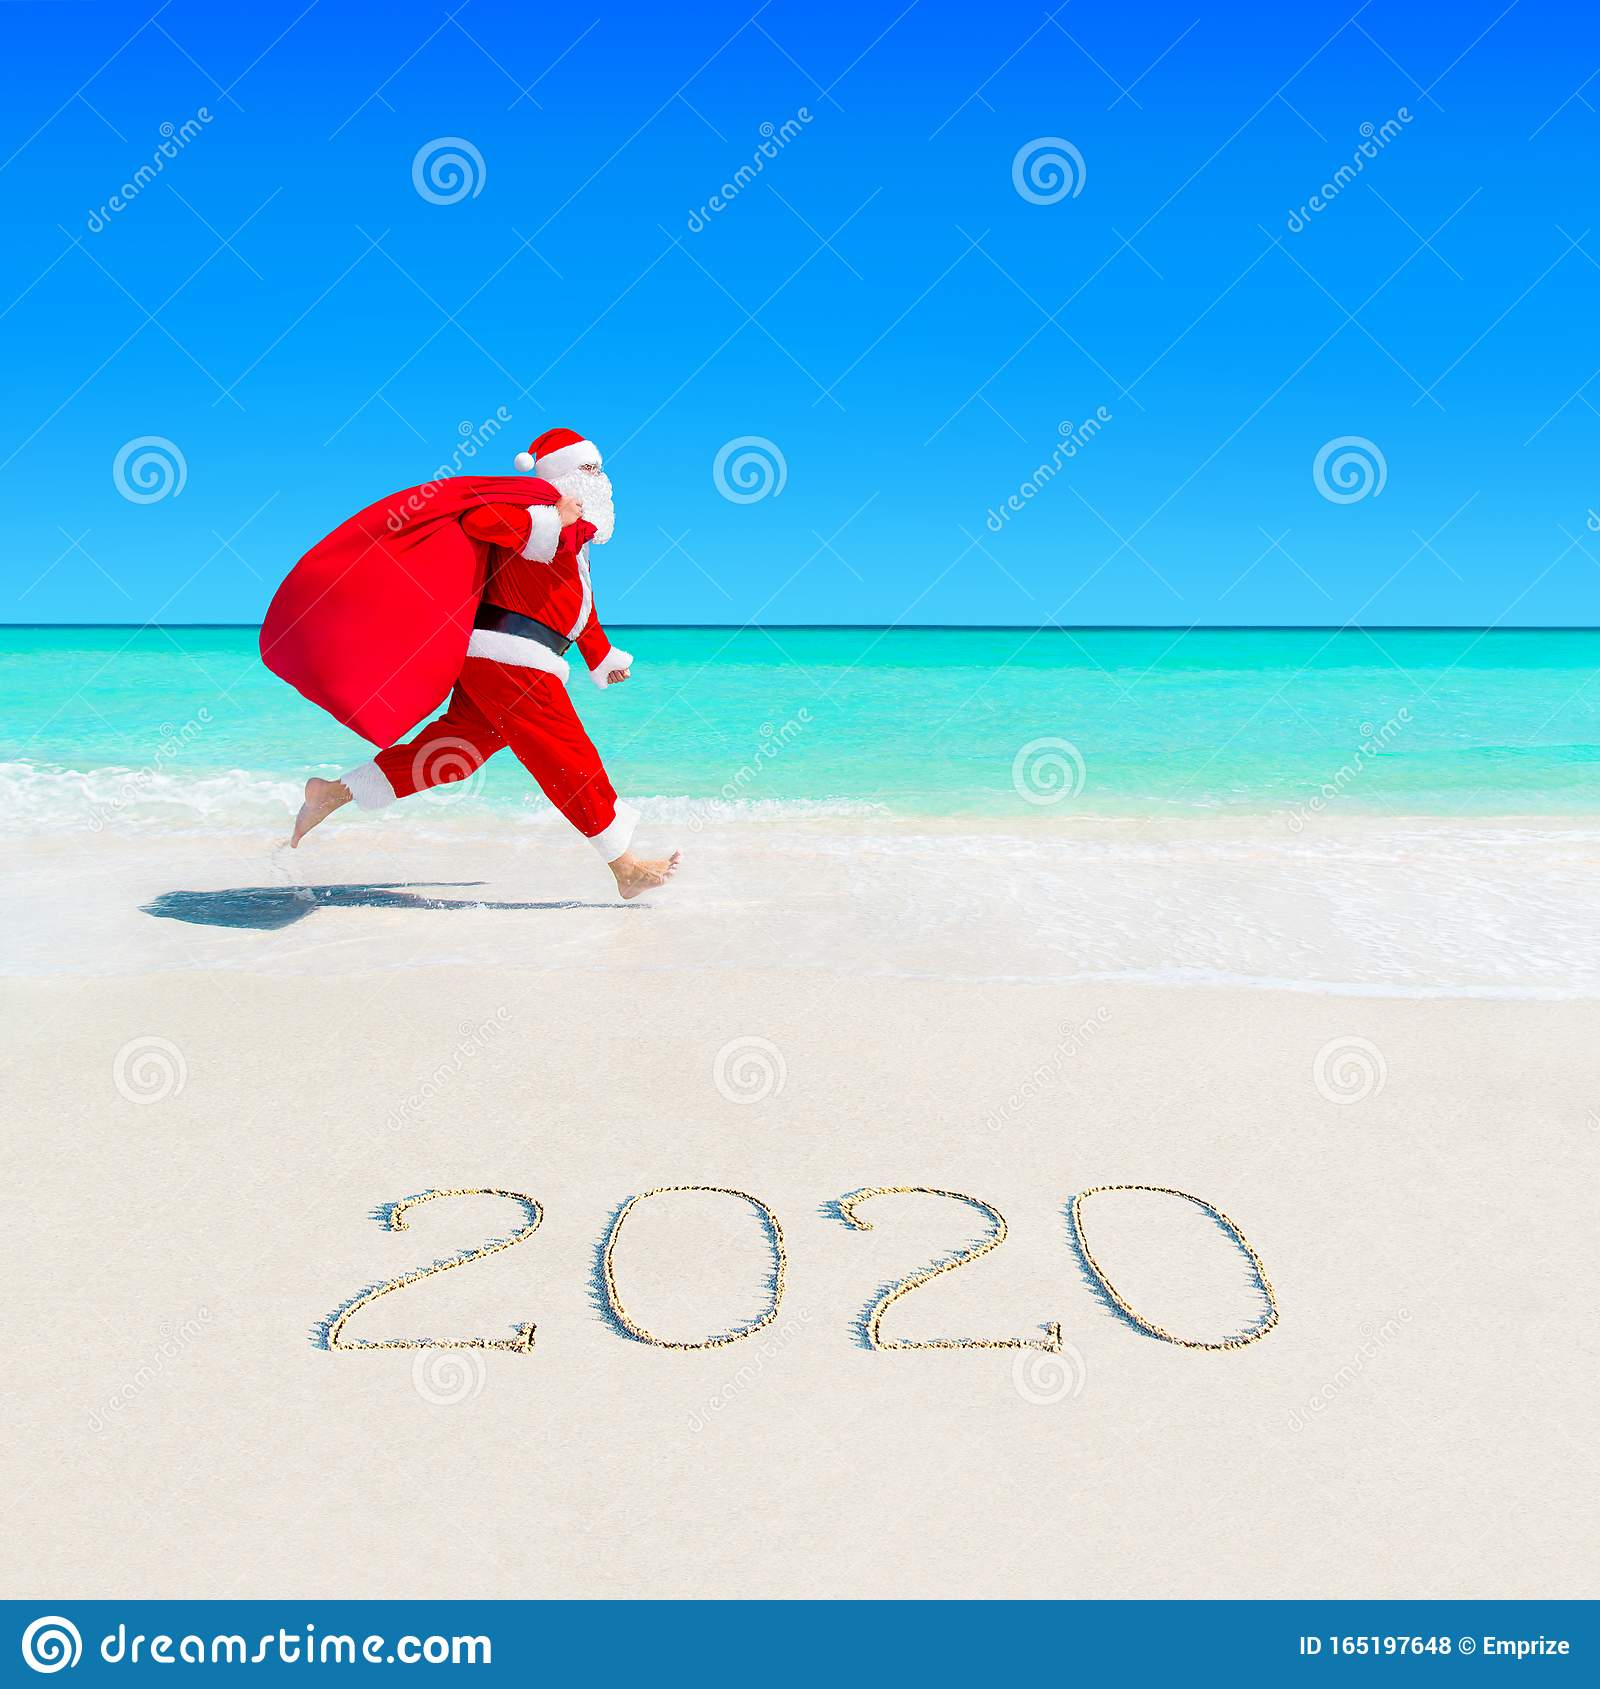 Beach Vacation Christmas 2020 Santa Claus Run At Sandy Ocean Beach 2020 With Christmas Sack